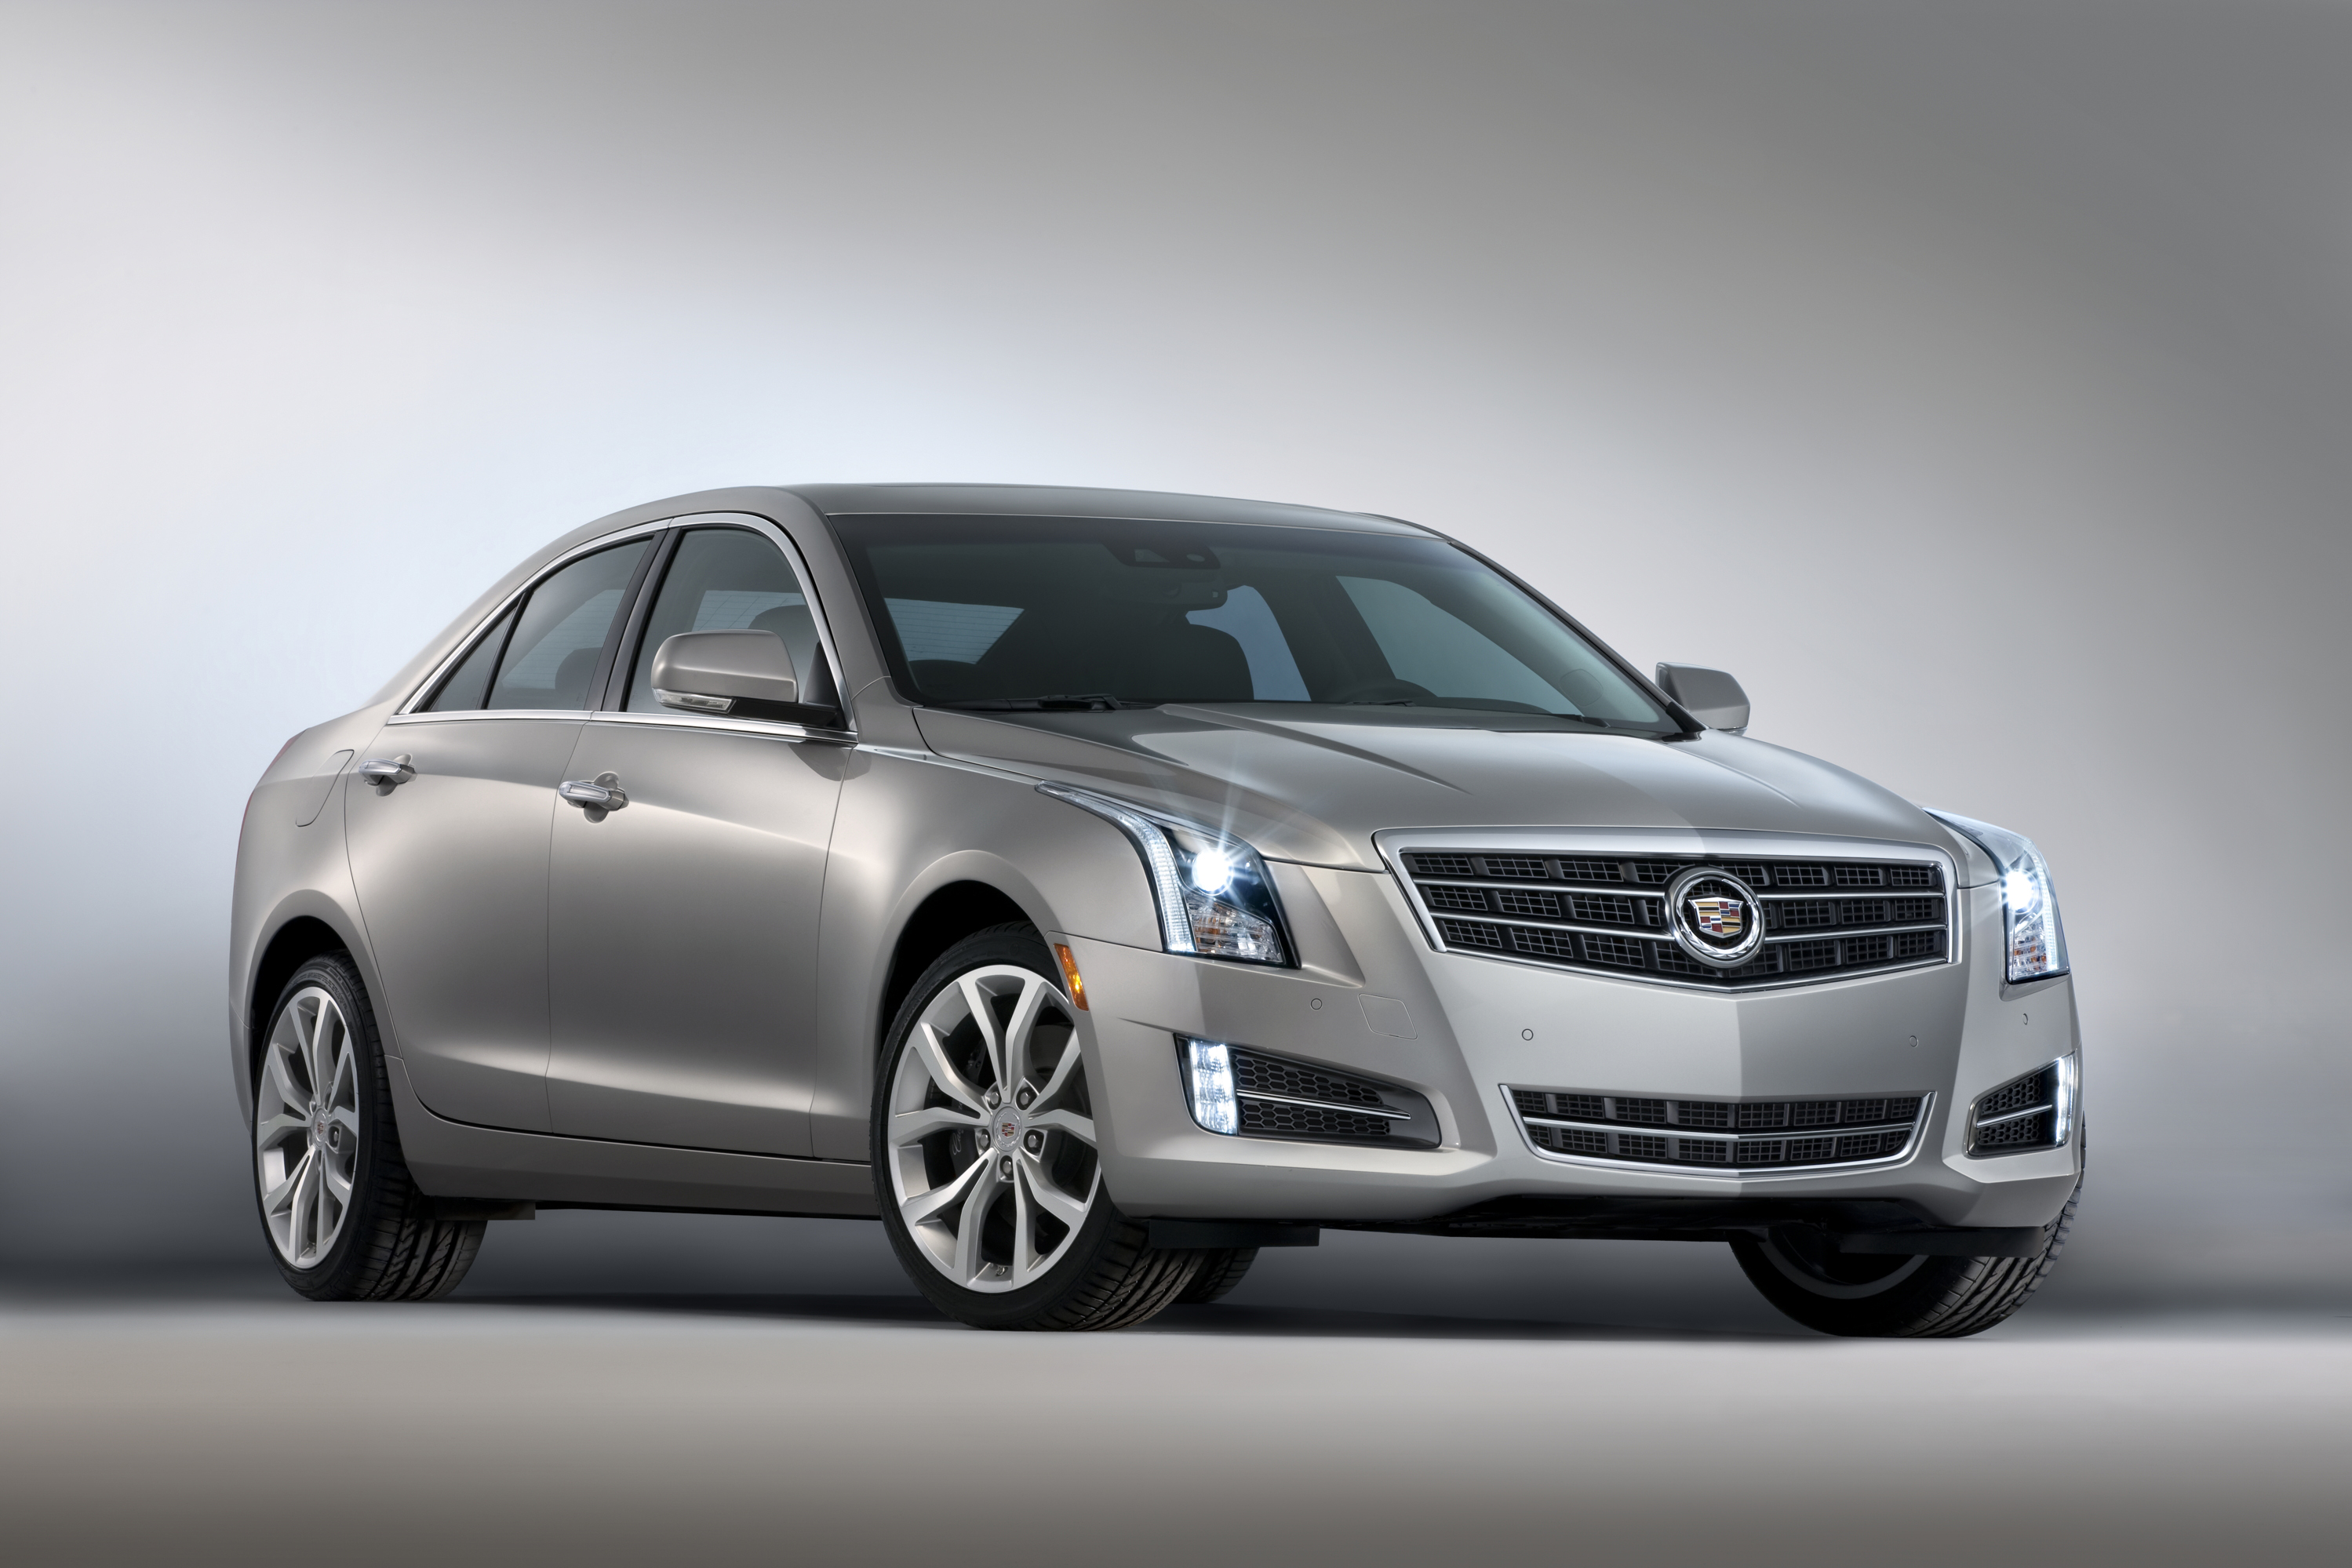 Cadillac Ats Safety Is Rooted In Avoidance